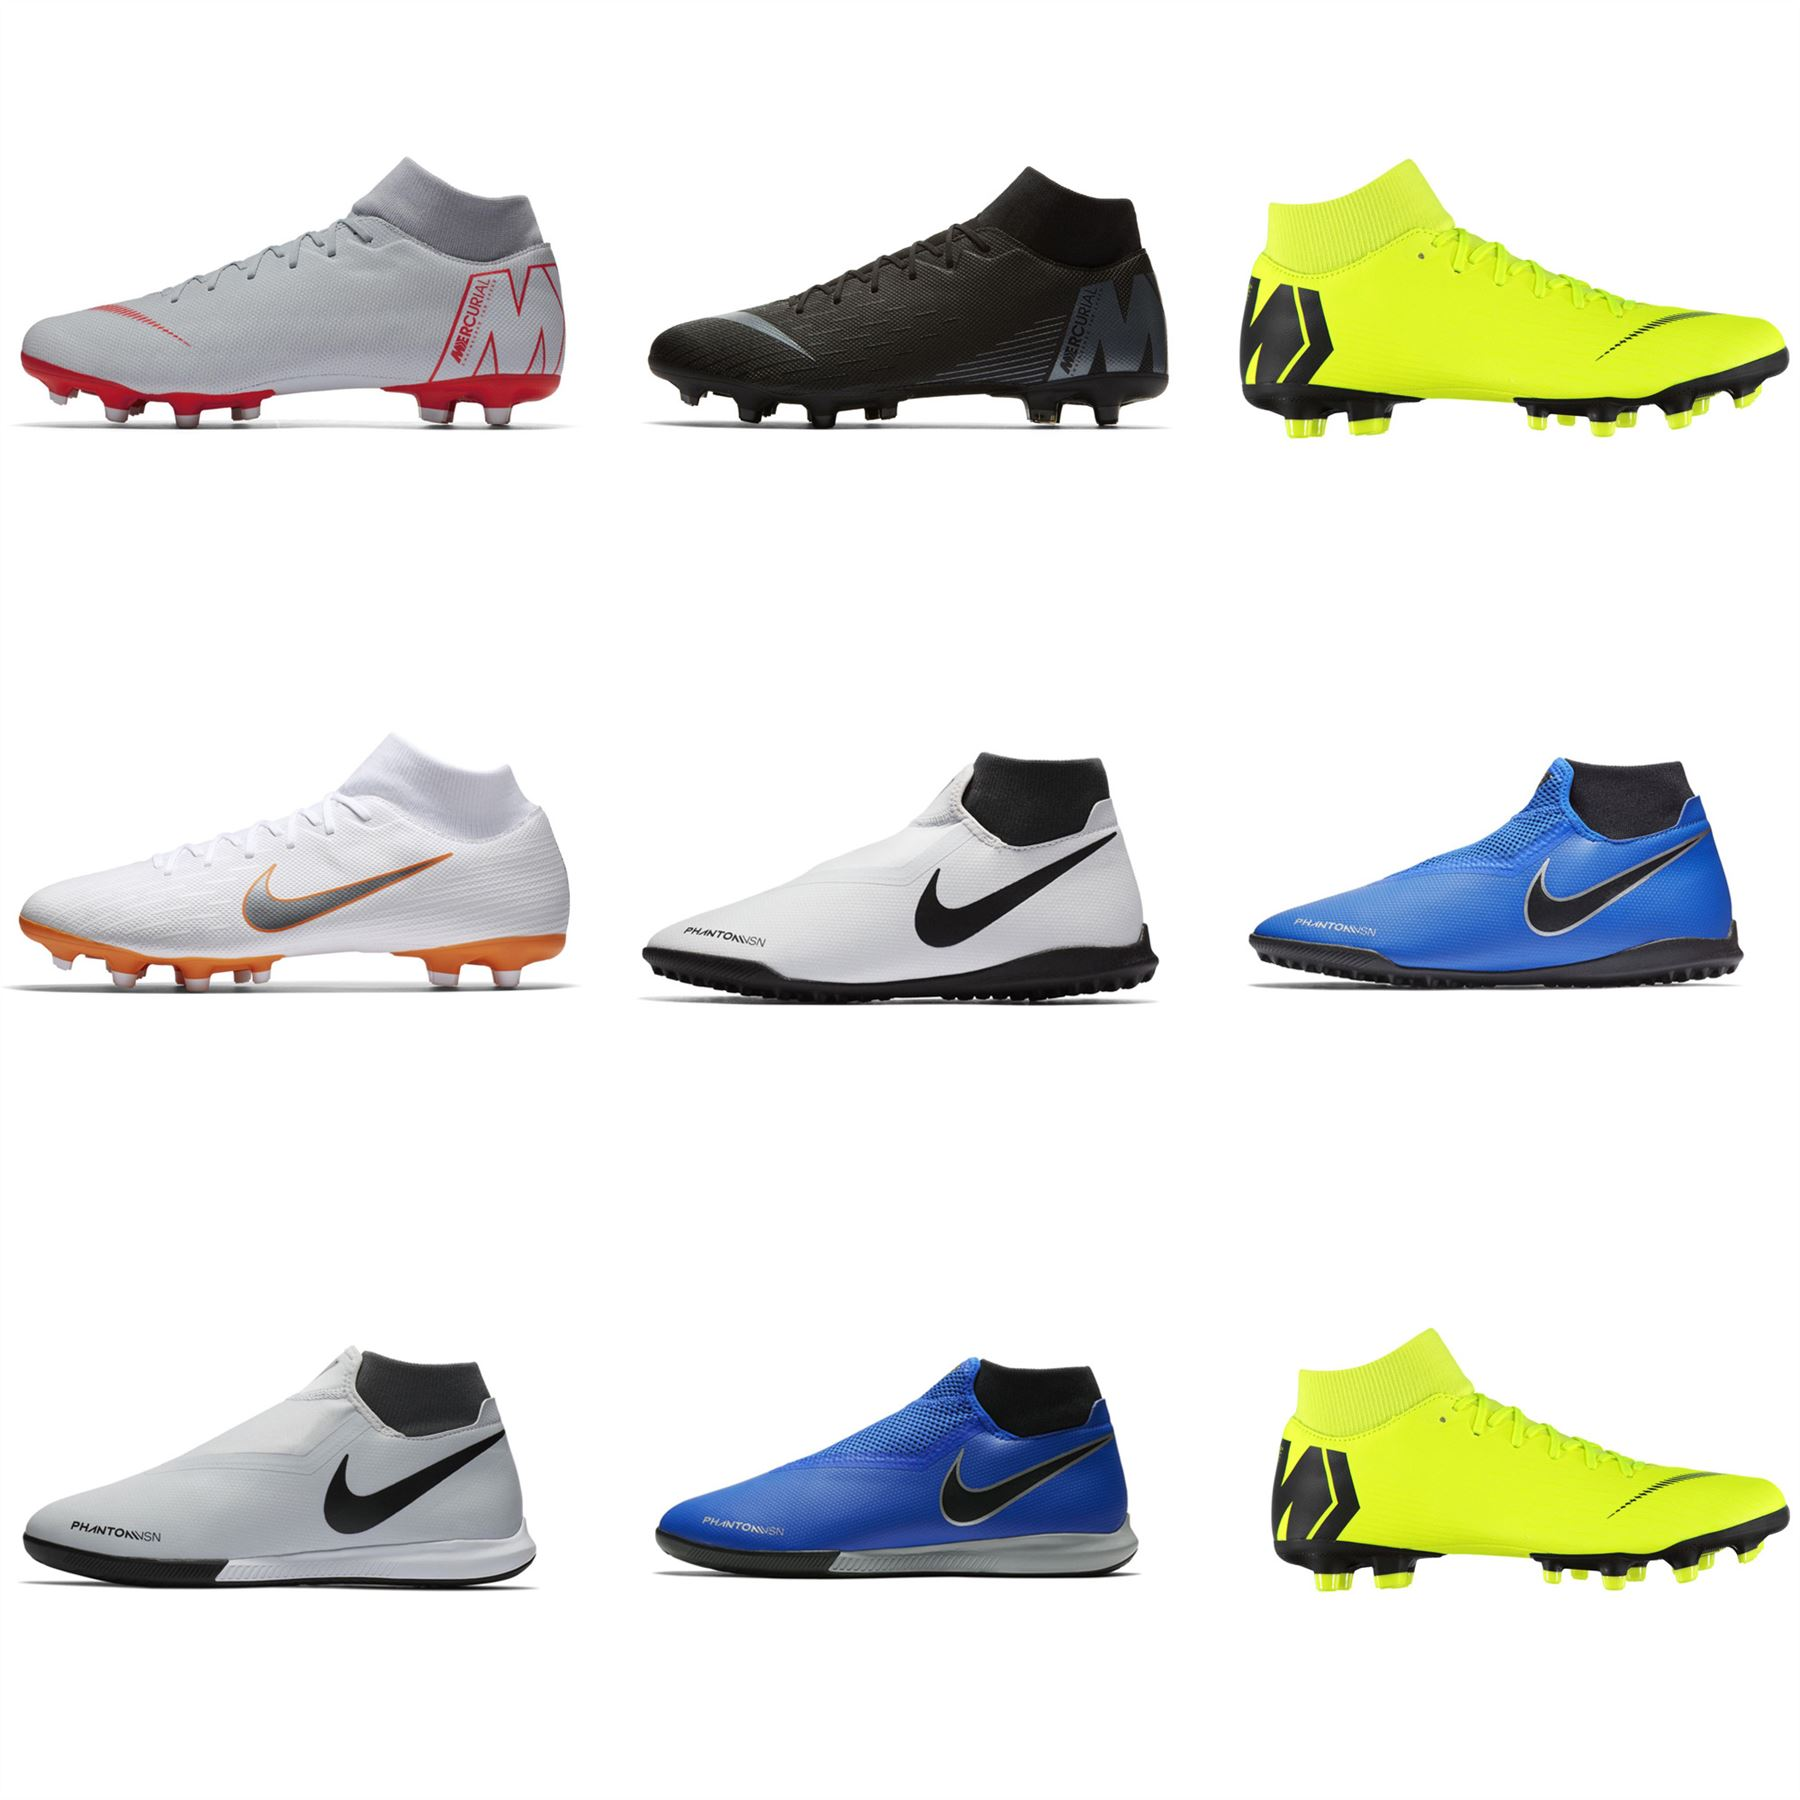 71c4ed33c Details about Nike Phantom Vision Academy DF Astro Turf Football Trainers  Mens Soccer Shoes